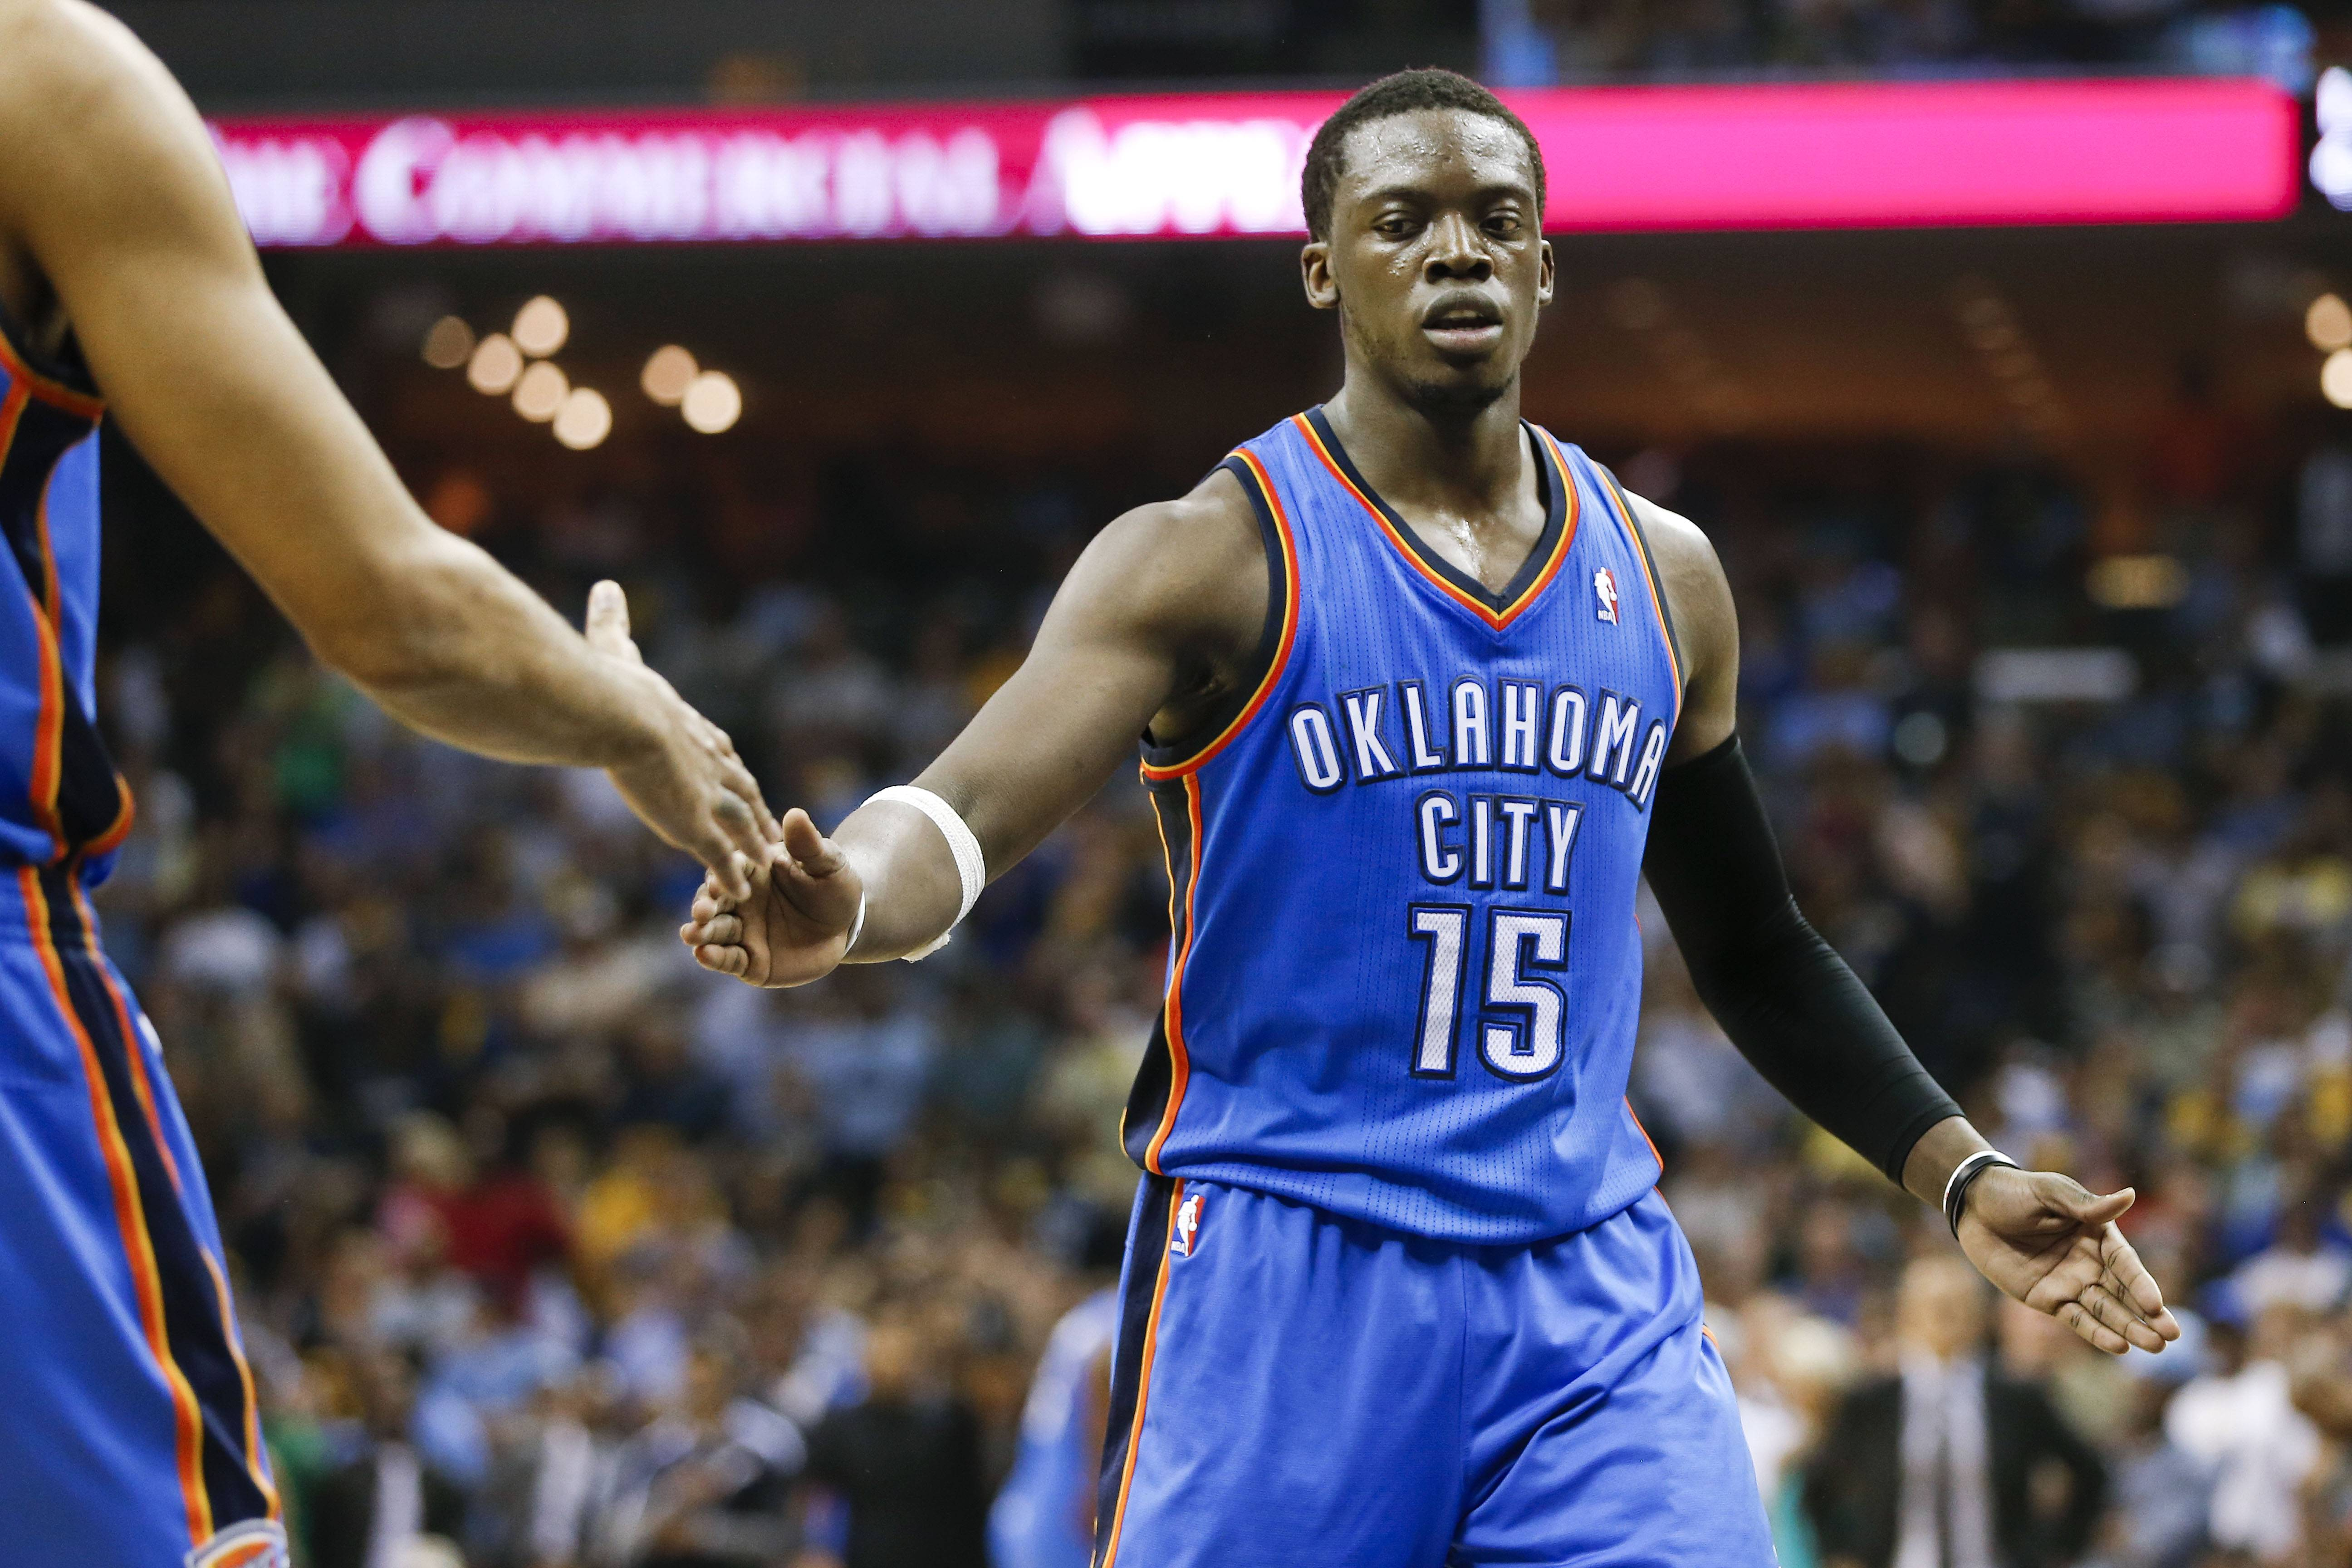 Oklahoma City Thunder guard Reggie Jackson is congratulated after making a free throw in the final seconds of overtime in Game 4 of an opening-round NBA basketball playoff series against the Memphis Grizzlies Saturday in Memphis, Tenn. Jackson scored 32 points as Oklahoma City won 92-89.